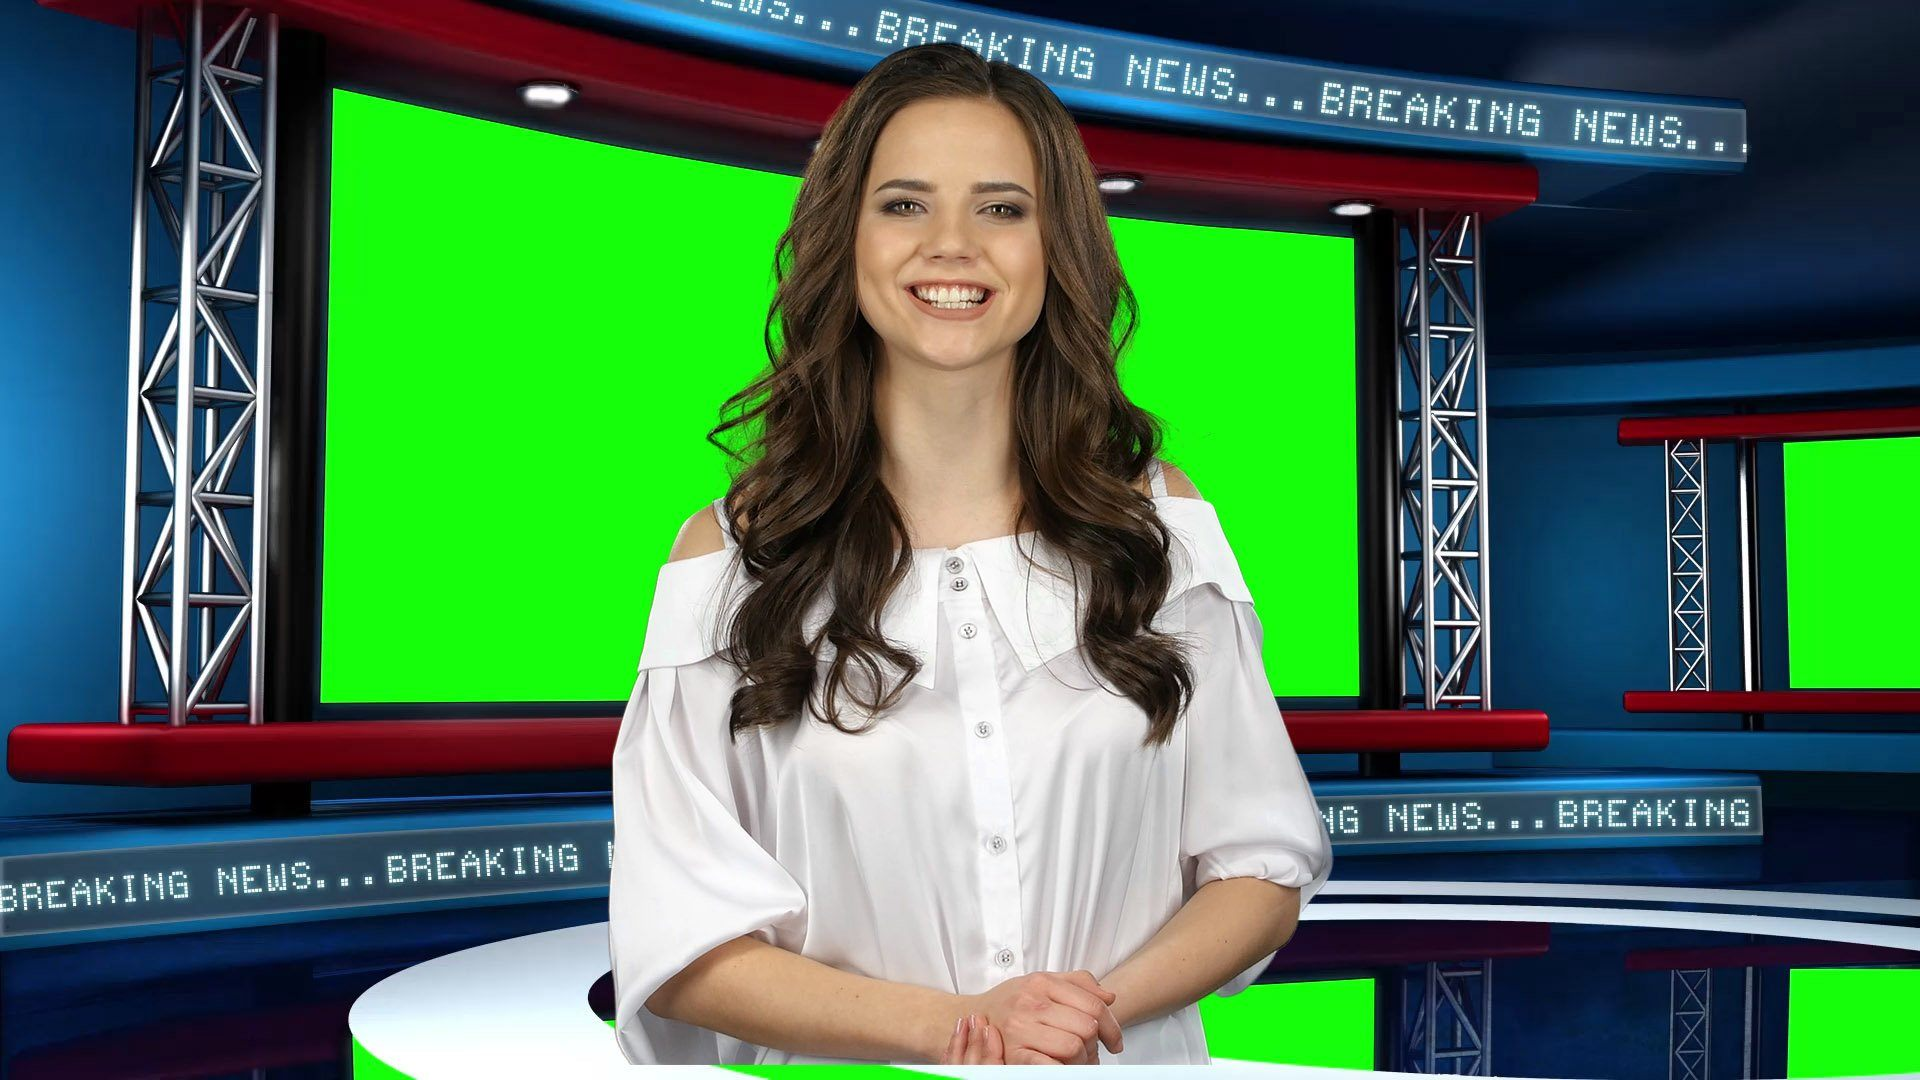 Global News Virtual Studio Set [ANGLE 4]